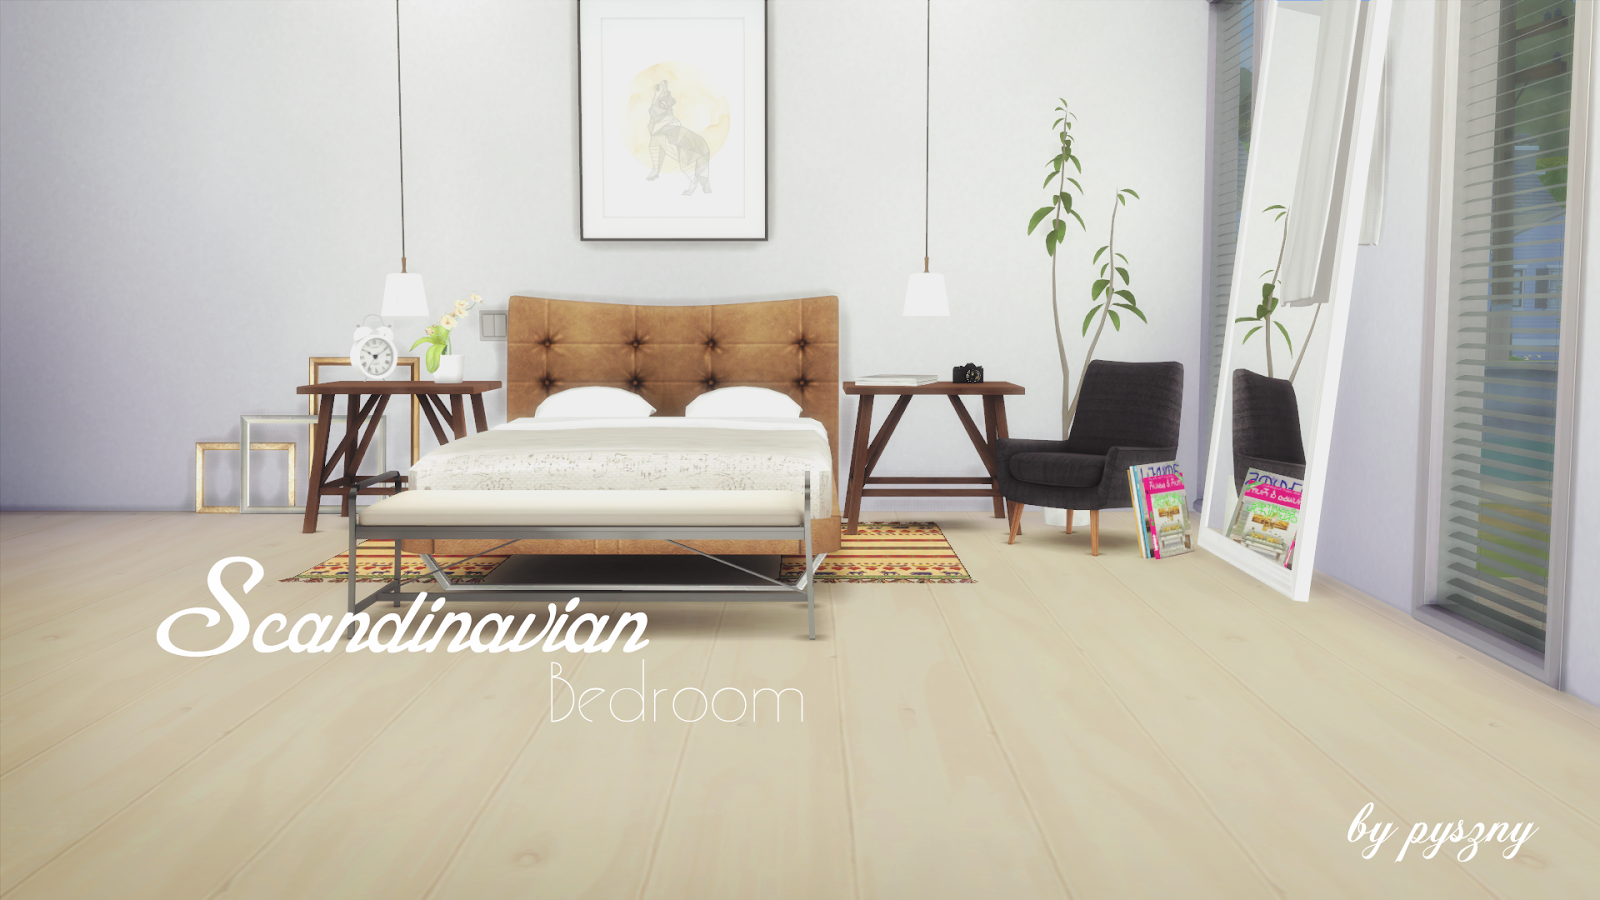 My Sims 4 Blog Scandinavian Bedroom Set By Pyszny